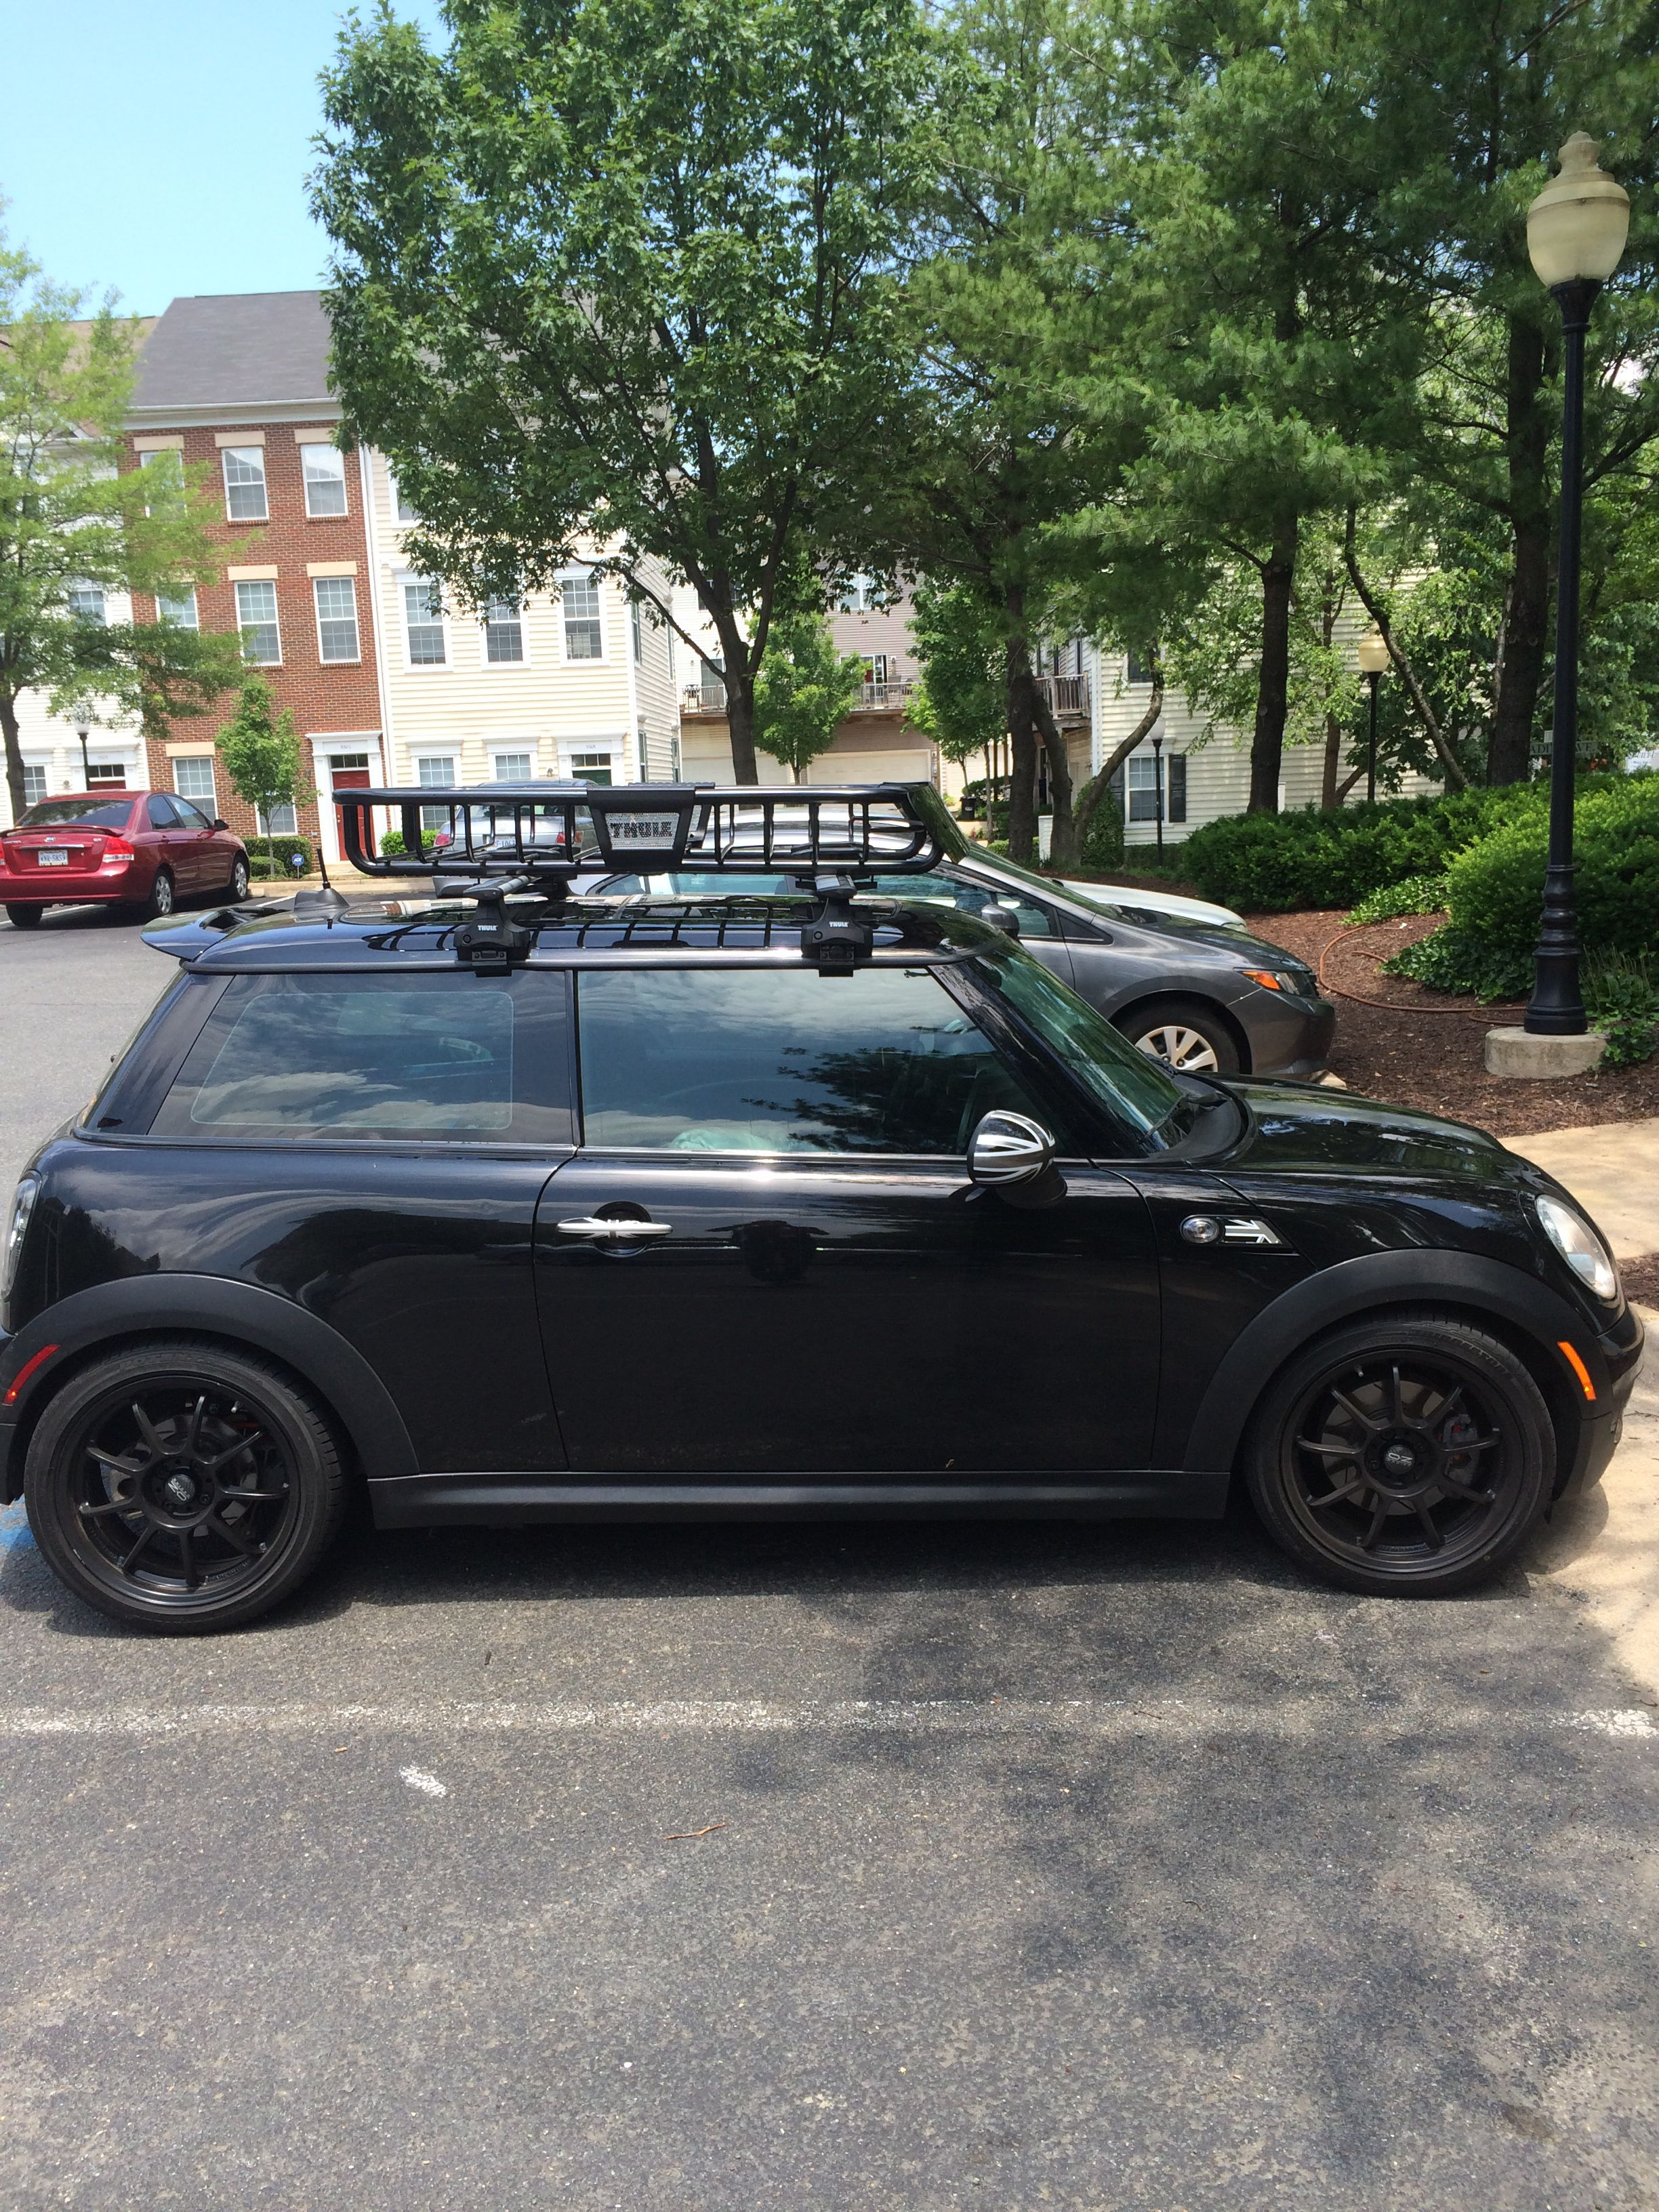 09 Mini Jcw W Thule M O A B Roof Rack Roof Architecture Glass Porch Modern Roofing